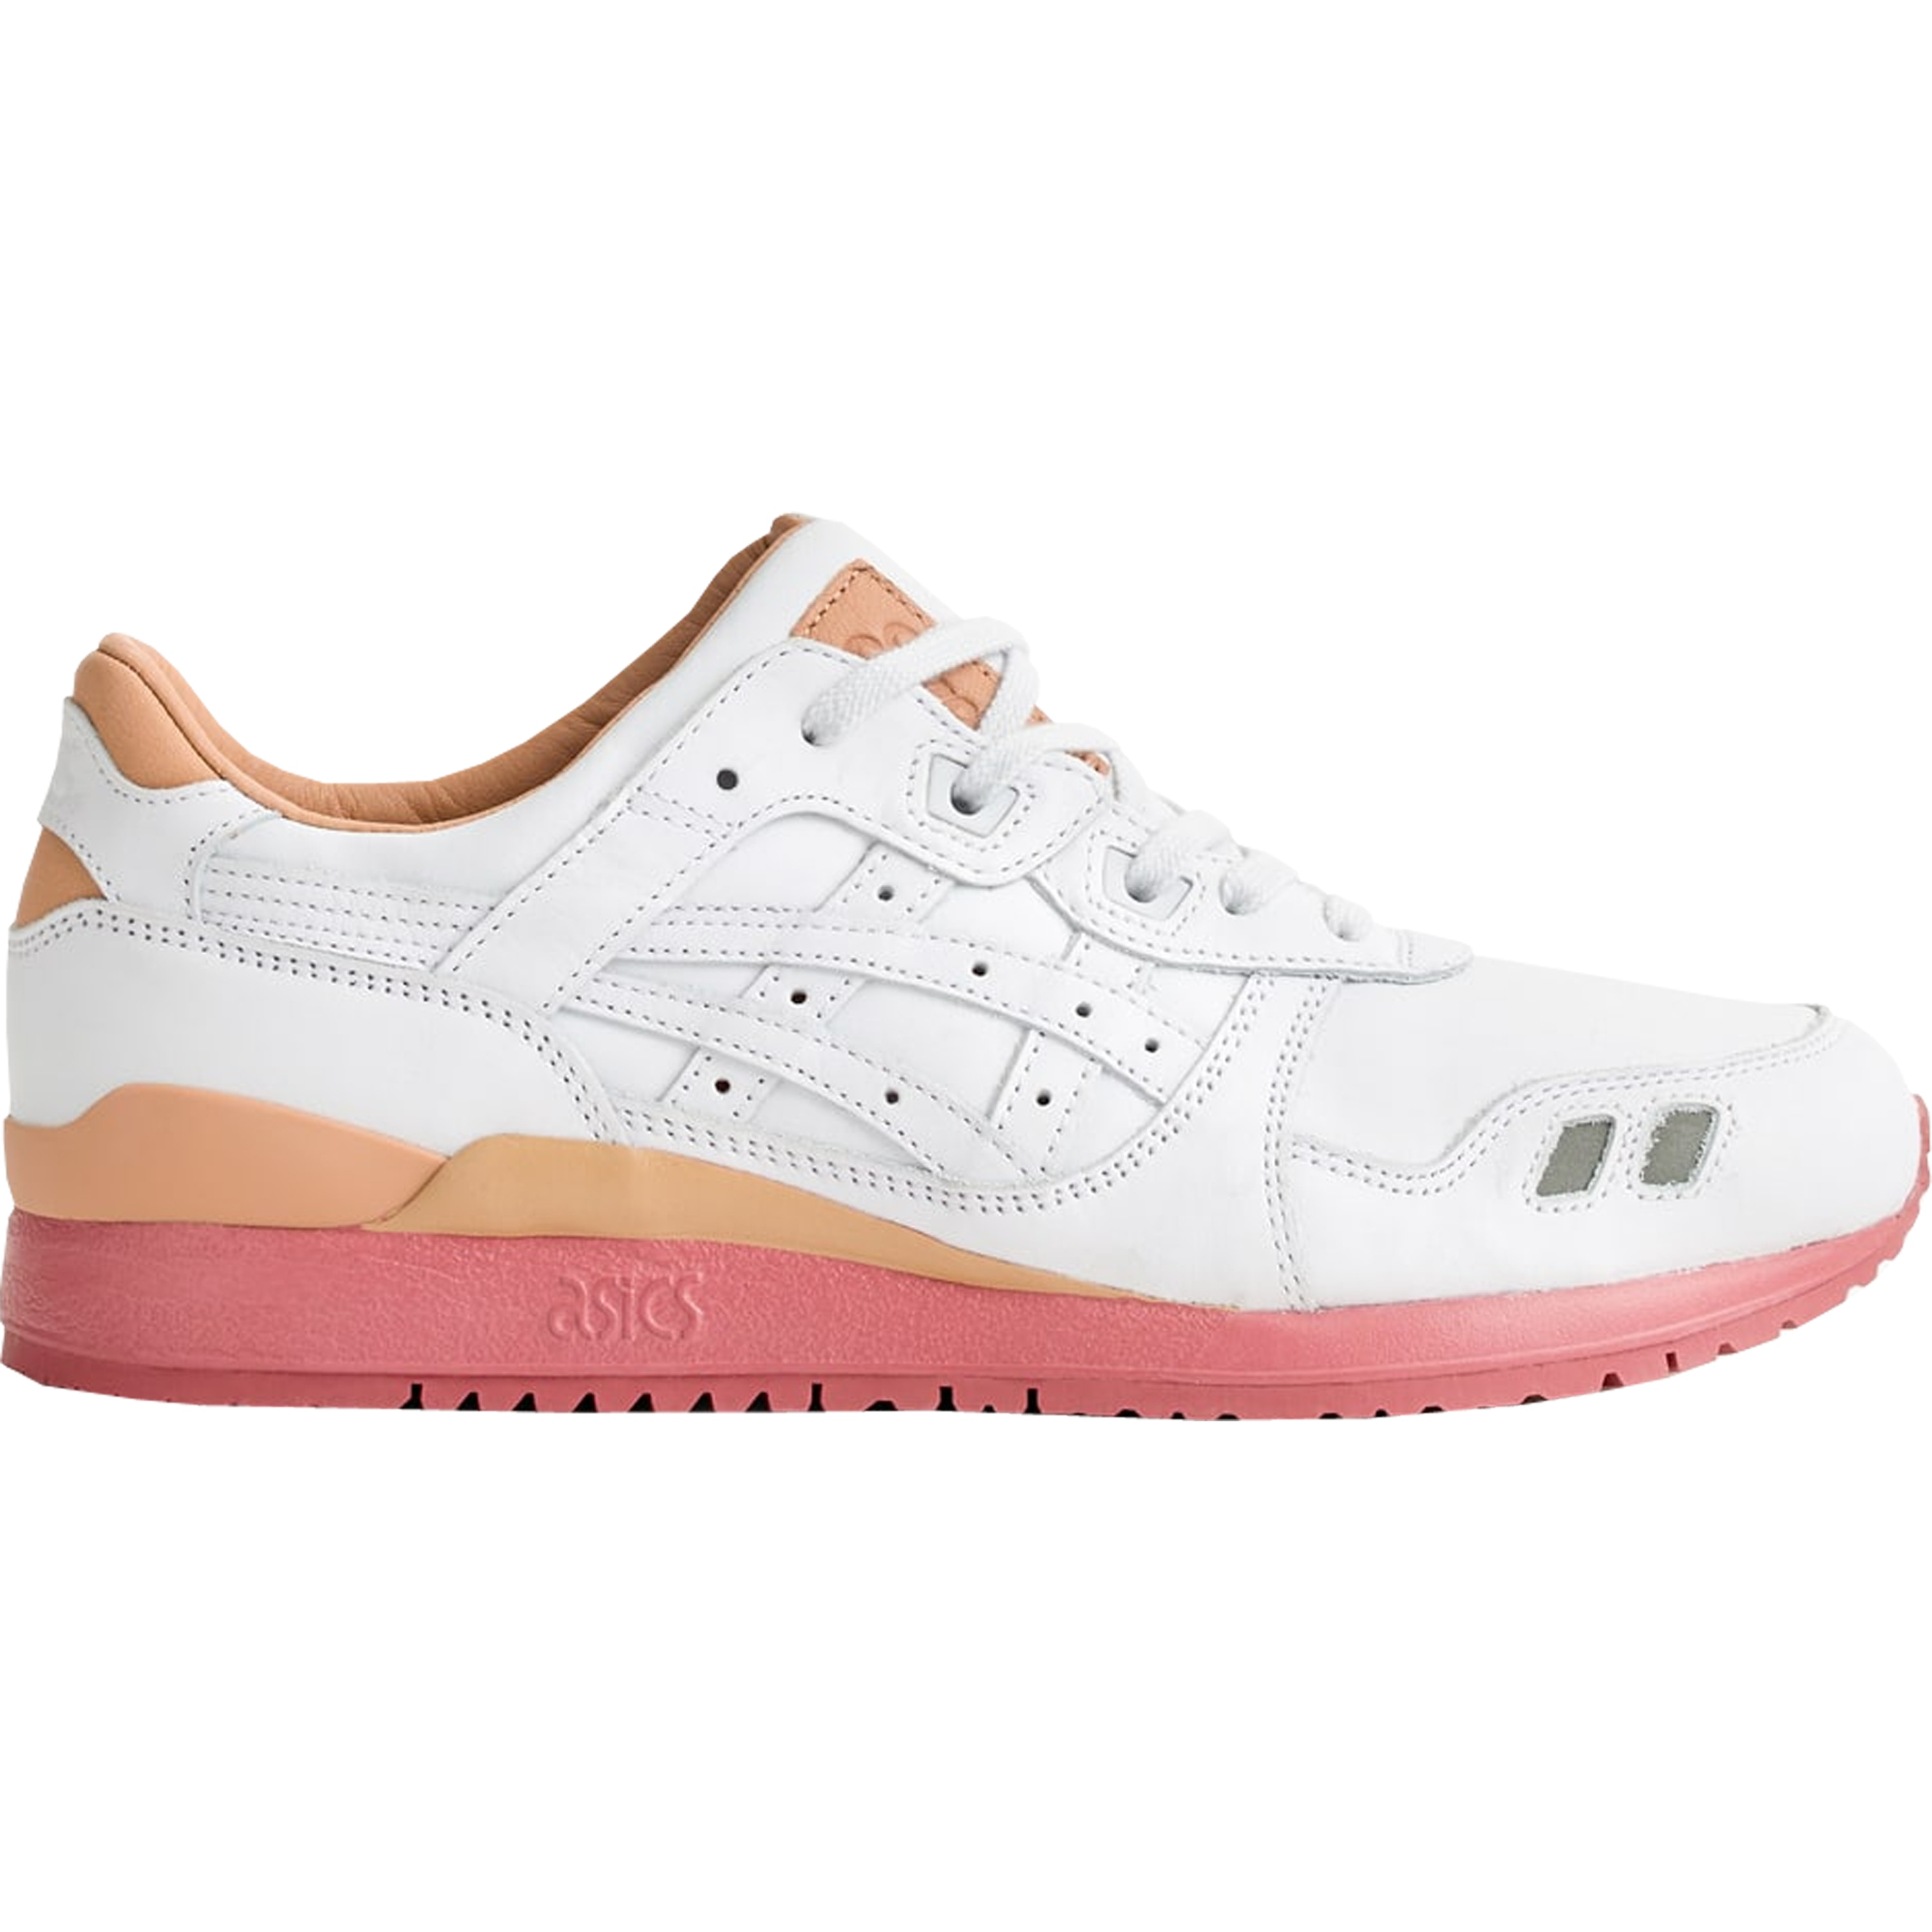 Asics Gel-Lyte III Packer Shoes x J. Crew White Buck (H7F3K 0101)